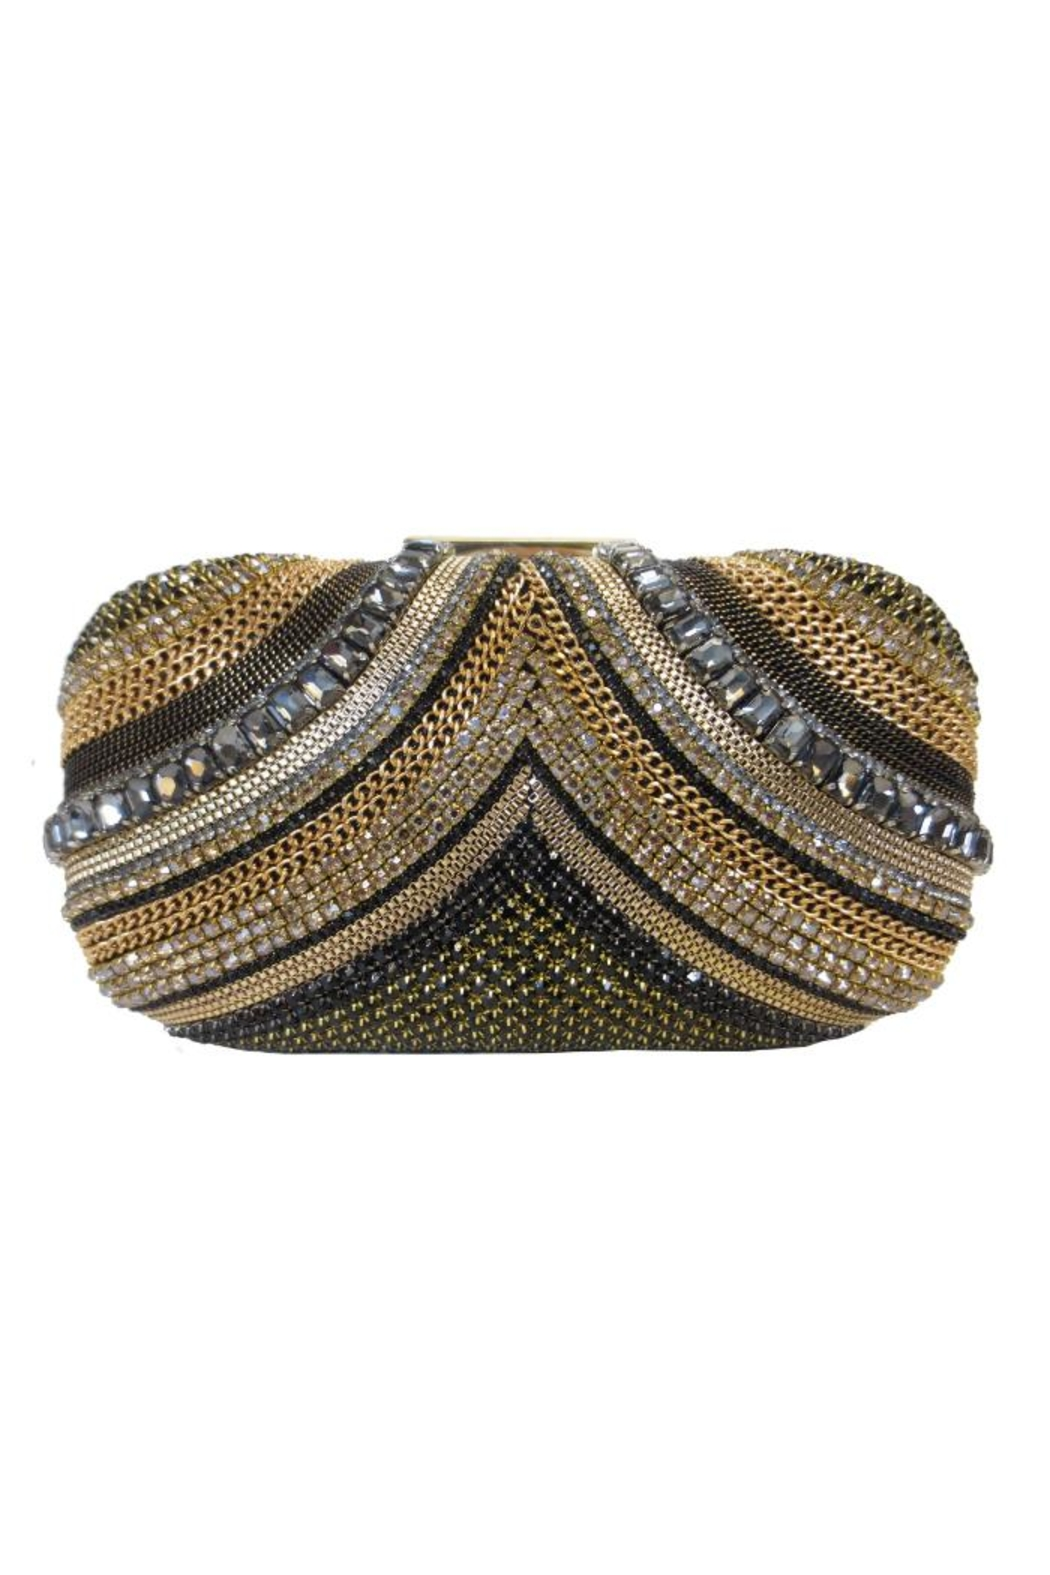 Sondra Roberts Crystal Chain Clutch - Front Cropped Image